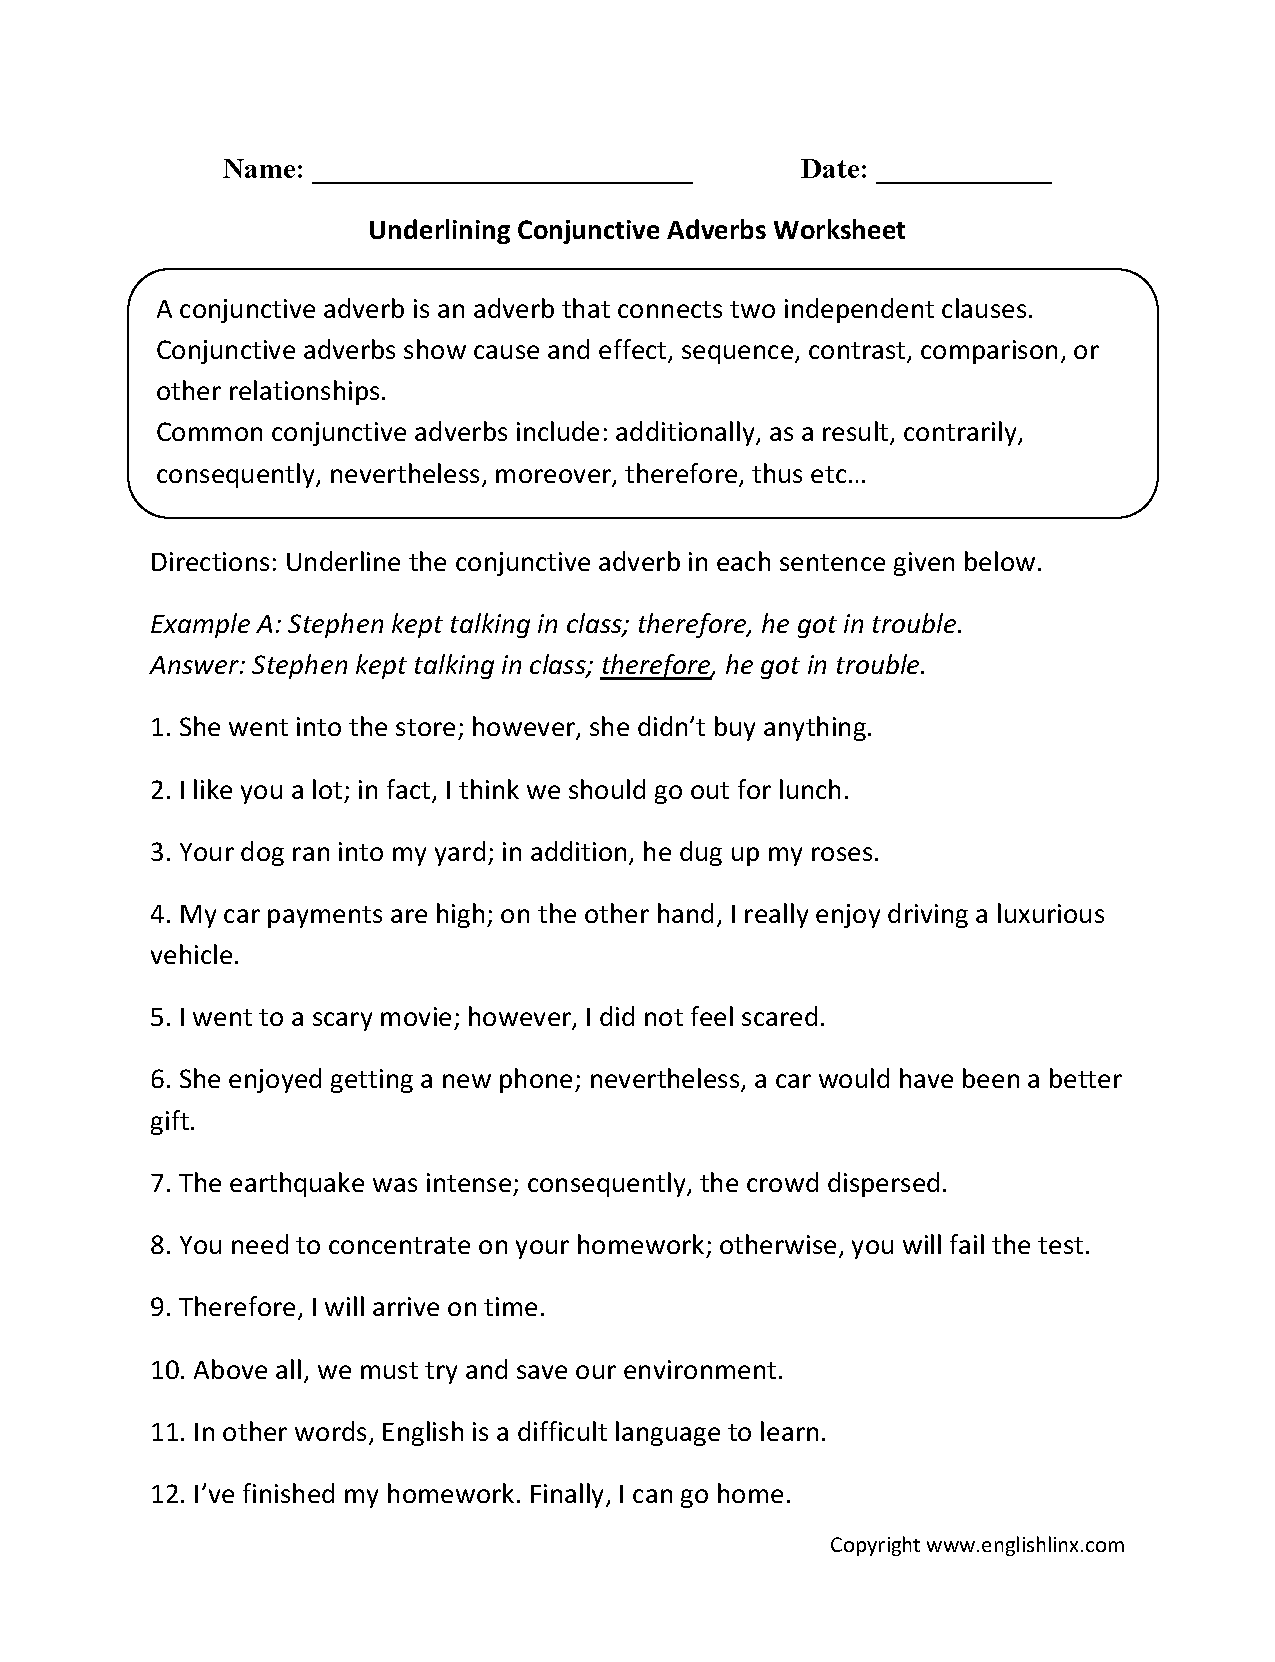 Weirdmailus  Scenic Englishlinxcom  Conjunctions Worksheets With Lovable Worksheet With Alluring Ordering Worksheet Also Sports Goal Setting Worksheet In Addition Ordering Positive And Negative Numbers Worksheet And Fraction To Decimals Worksheets As Well As Upper Case Letters Worksheet Additionally Metaphor Exercises Worksheets From Englishlinxcom With Weirdmailus  Lovable Englishlinxcom  Conjunctions Worksheets With Alluring Worksheet And Scenic Ordering Worksheet Also Sports Goal Setting Worksheet In Addition Ordering Positive And Negative Numbers Worksheet From Englishlinxcom